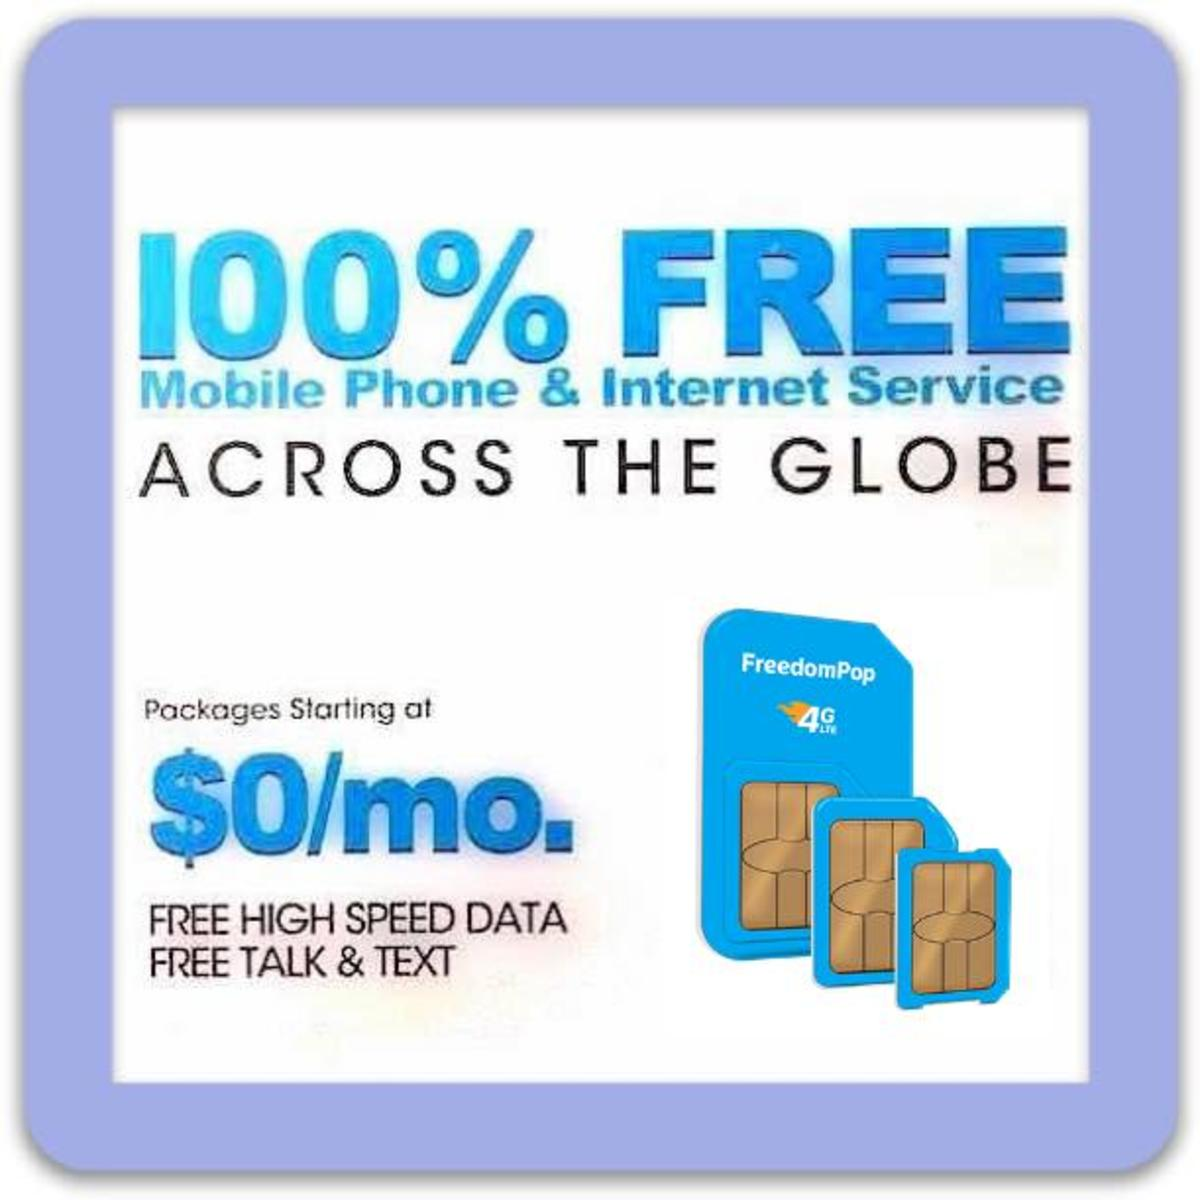 How to Get Free Cellular Service from FreedomPop with No Billing